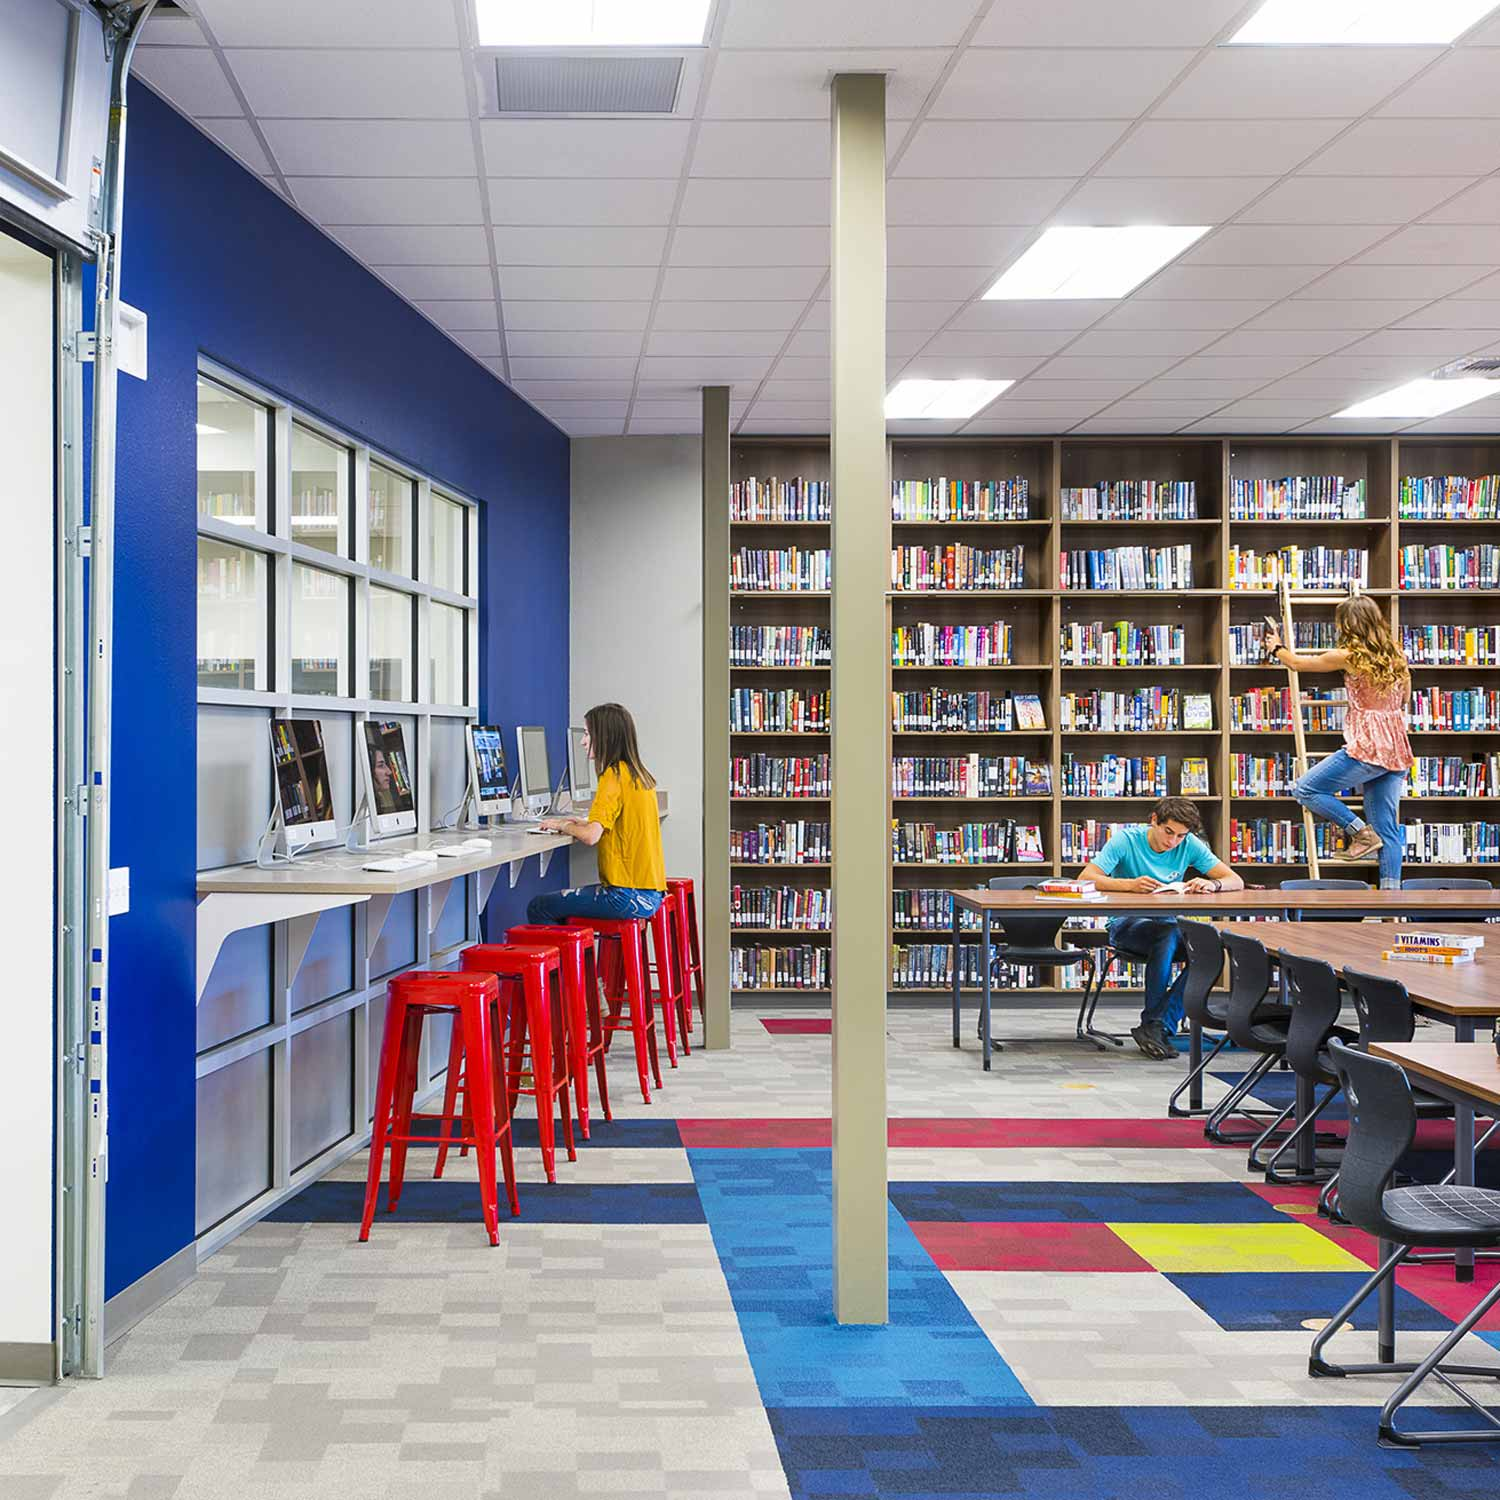 Education design (school library) for Bigfork High School in Bigfork, Montana